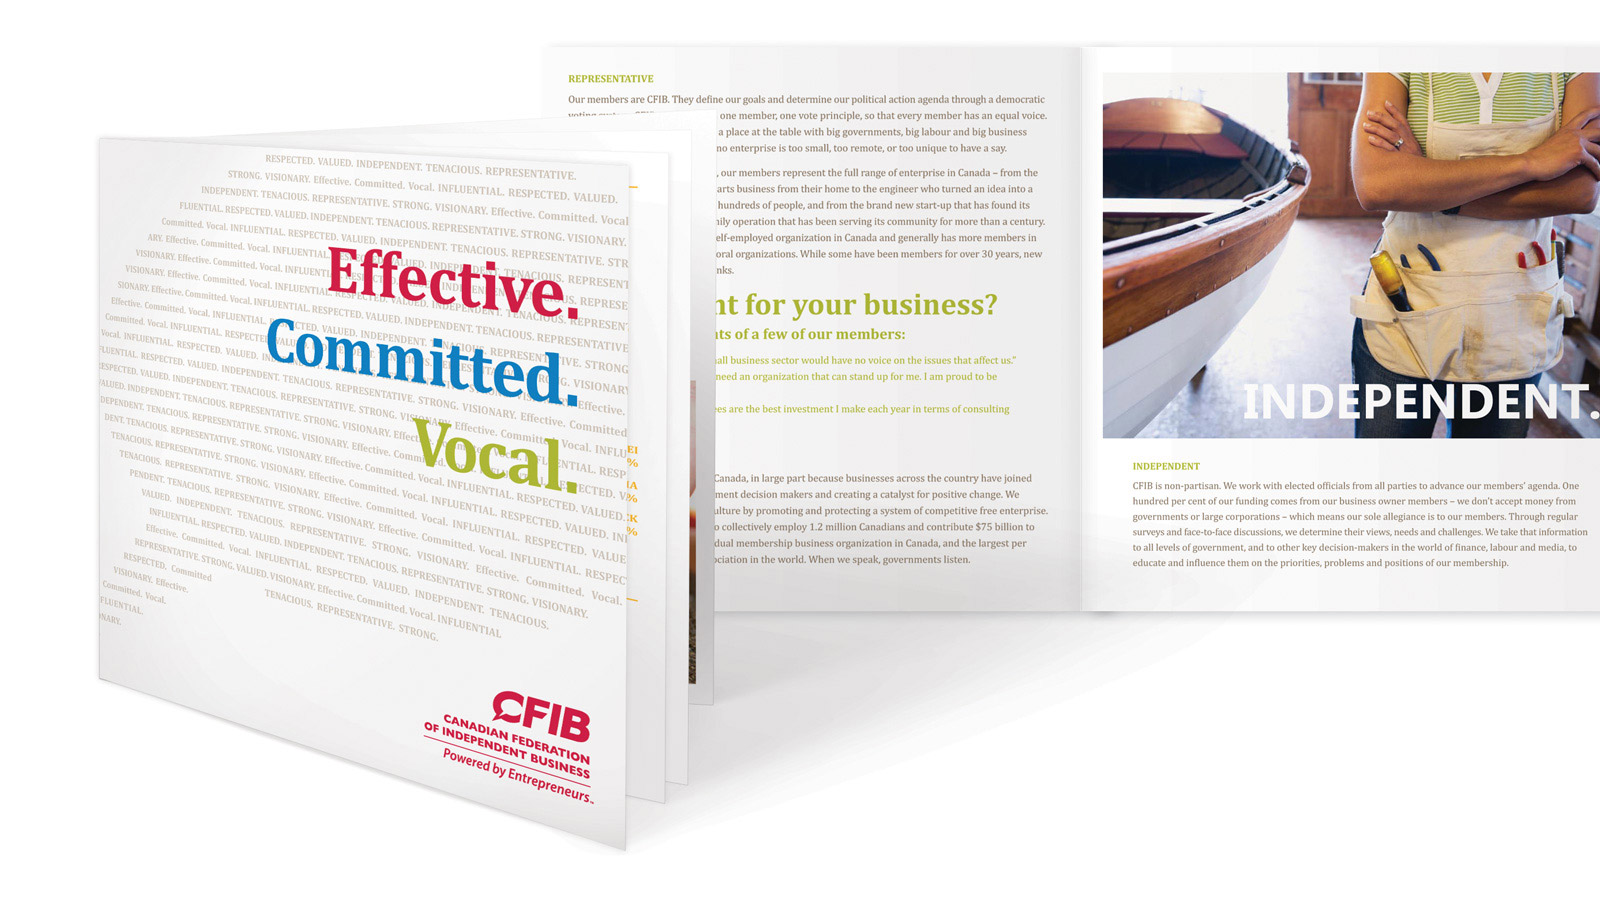 Canadian Federation of Independent Business | Brand Identity | Design